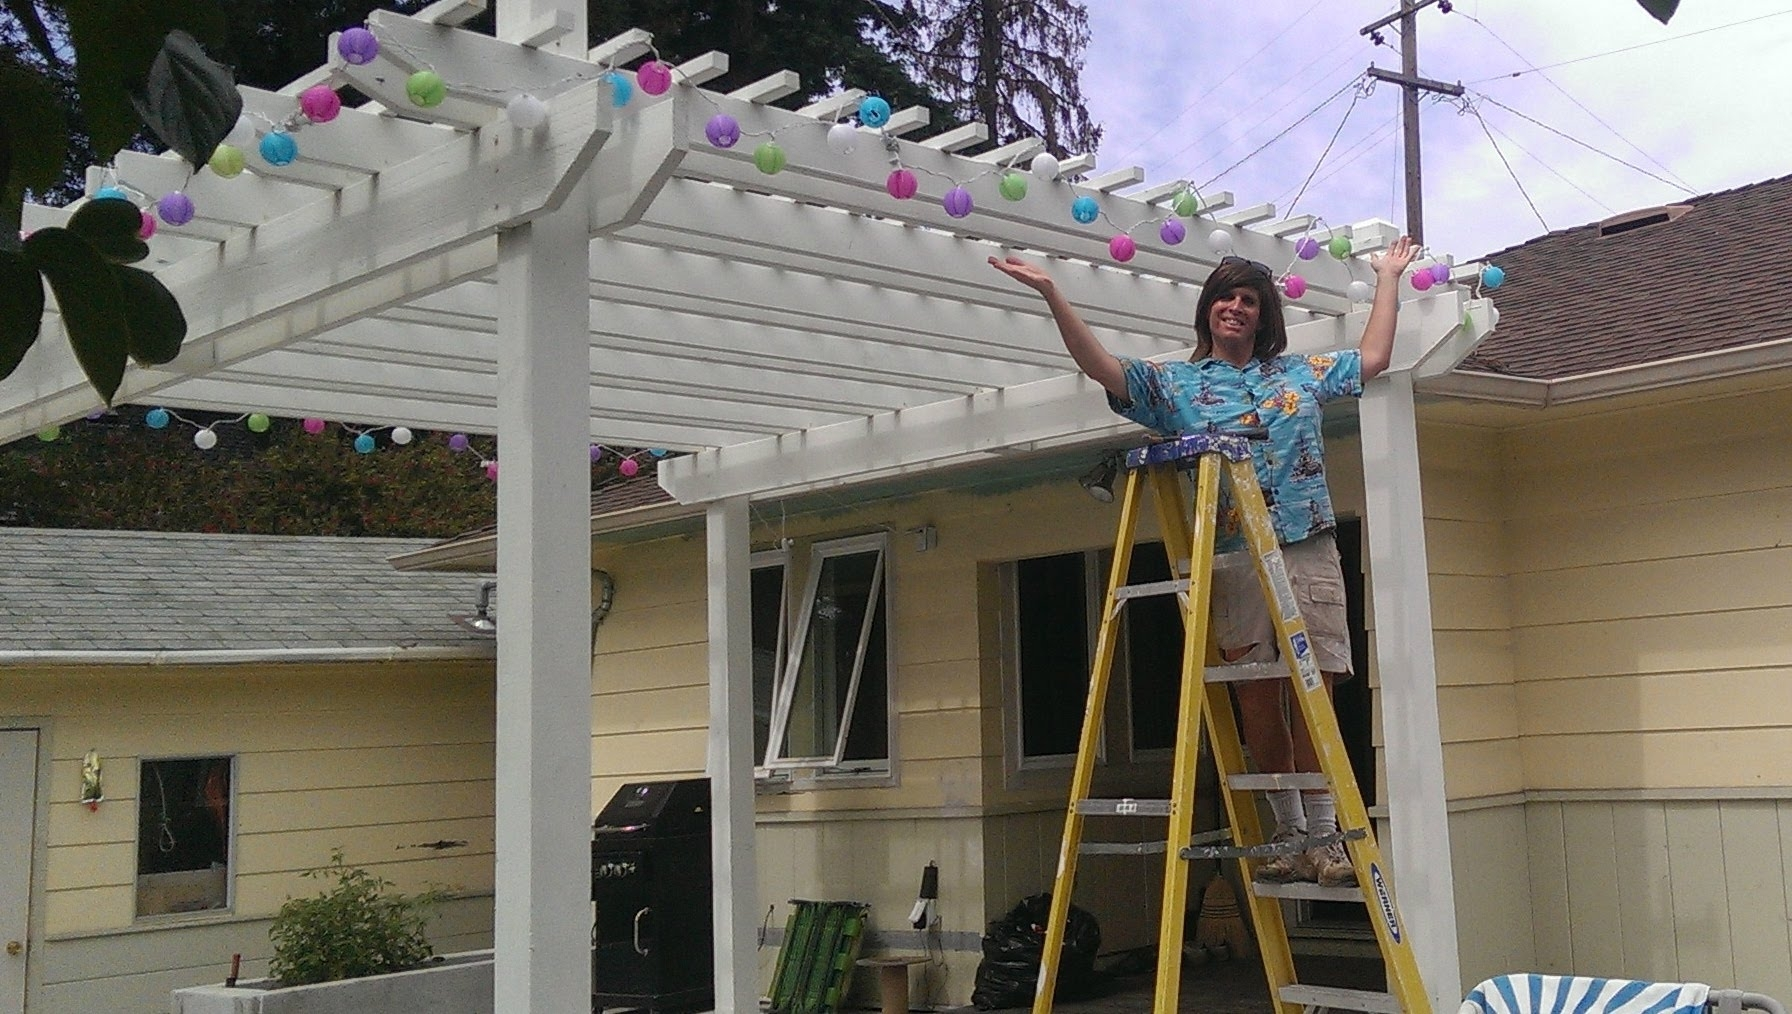 How To Hang Outdoor Party Lightsweekend Warrior Project – Youtube Regarding Hanging Outdoor Lights For A Party (#7 of 15)